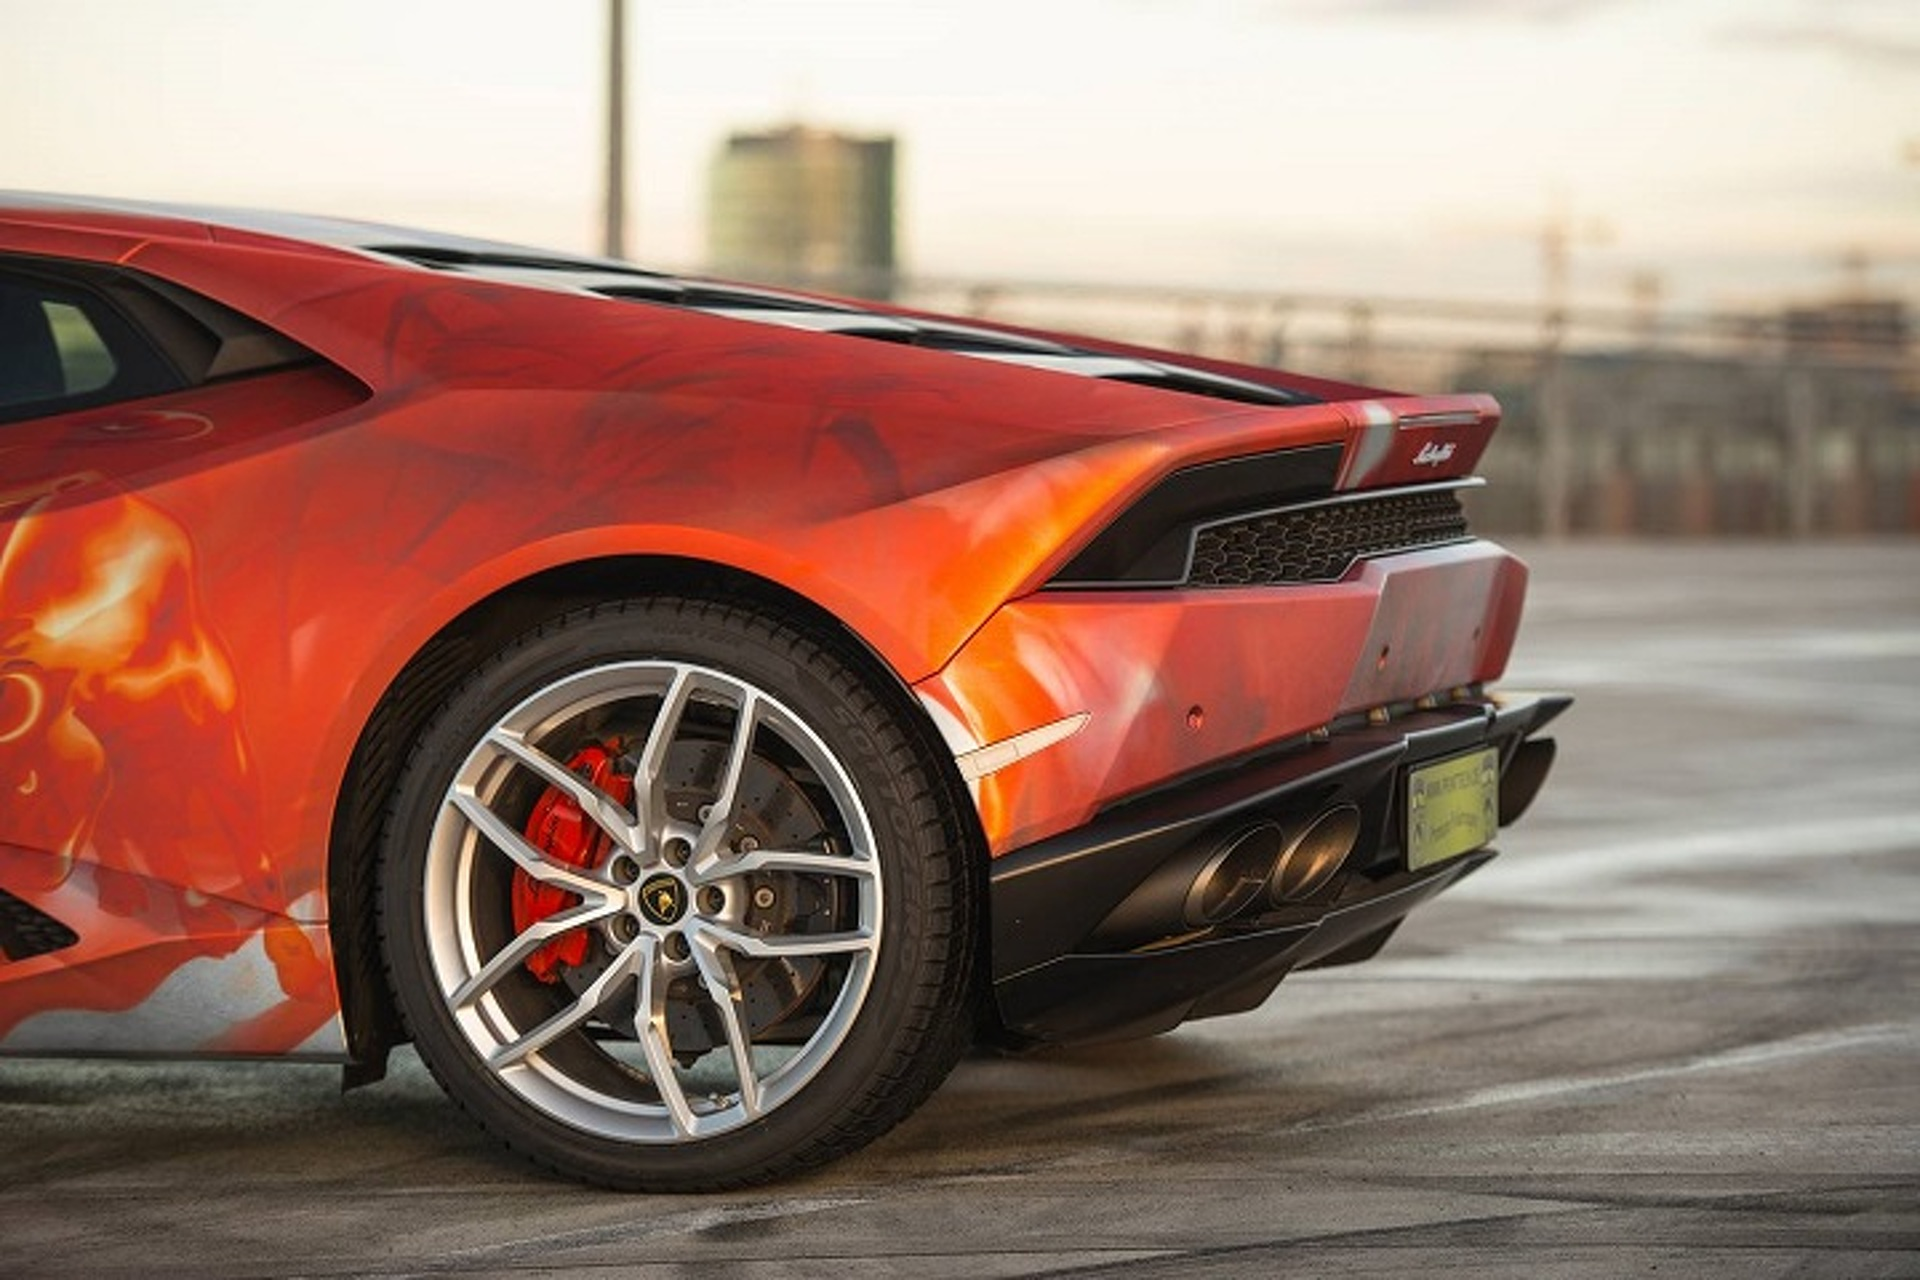 Don't Get Too Close to This Flame-Covered Lamborghini Huracan, It's Hot